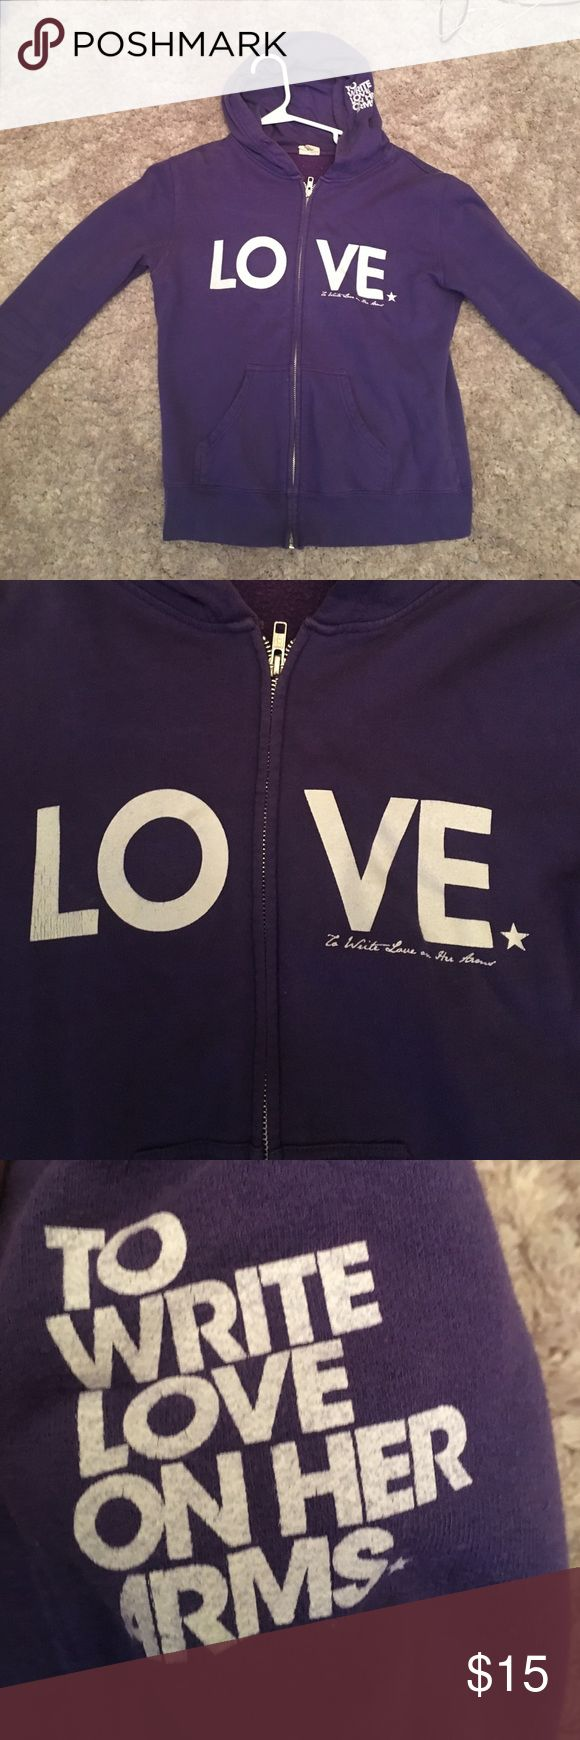 Purple To Write Love On Her Arms hoodie Purple zip up hoodie purchased from Hot Topic. In collaboration with To Write Love On Her Arms charity. Well loved. Good condition Hot Topic Tops Sweatshirts & Hoodies